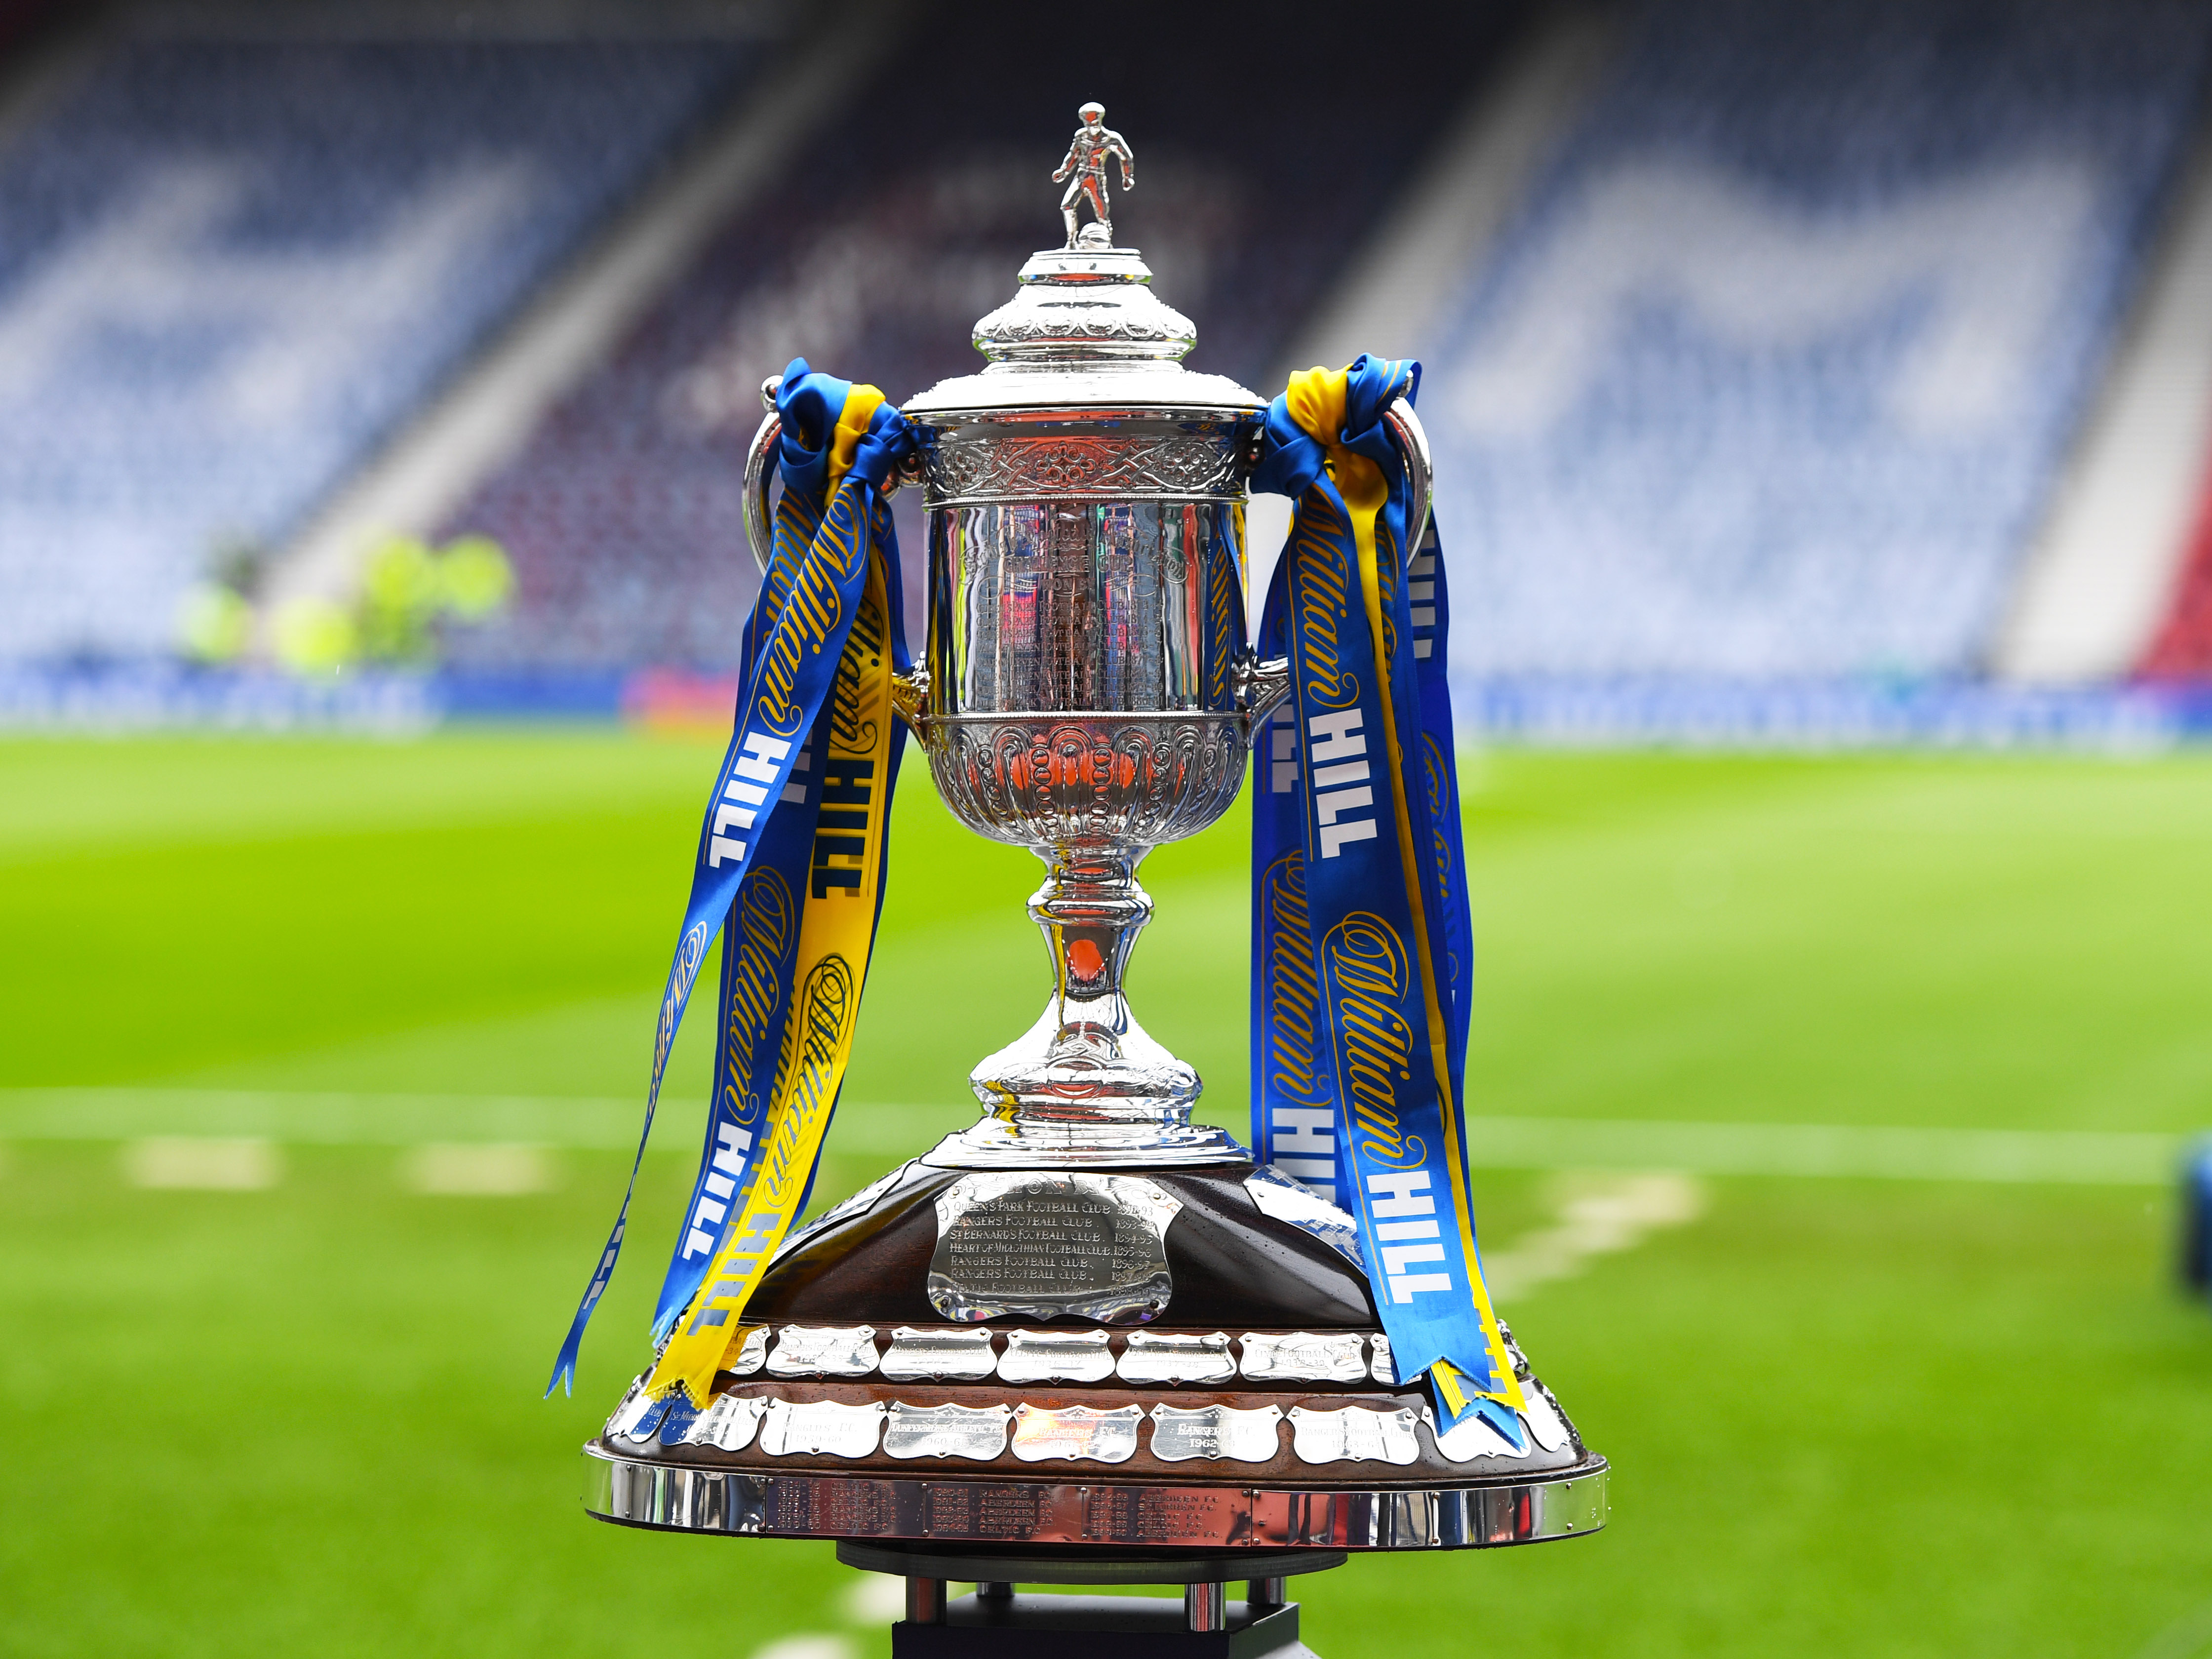 The Scottish Cup trophy